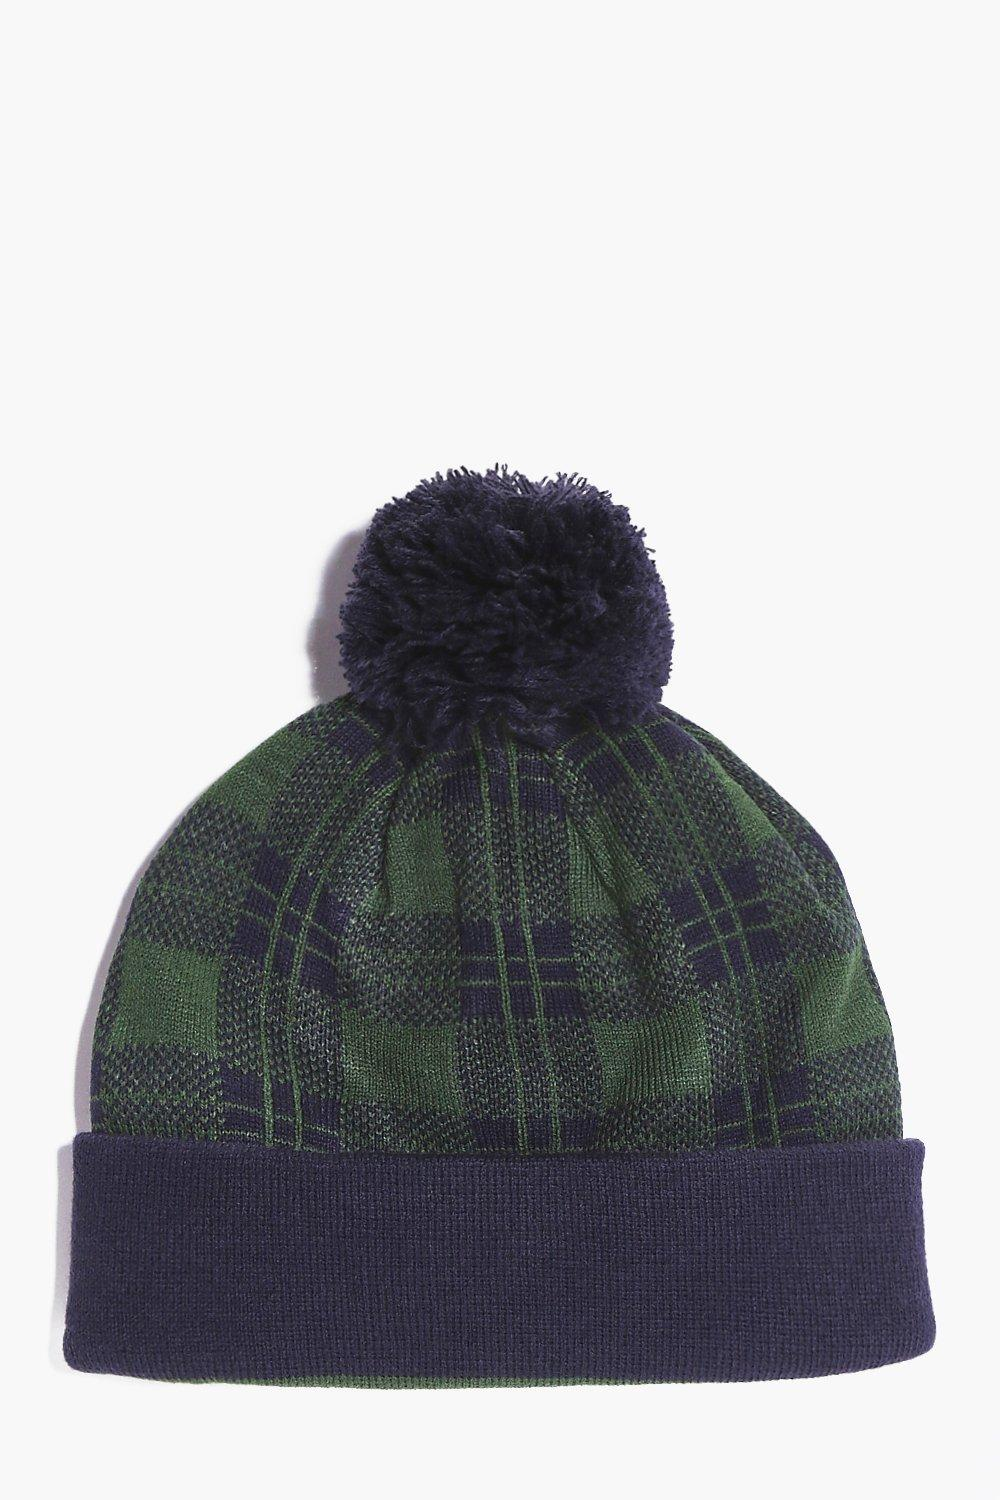 Product photo of Bobble hat green